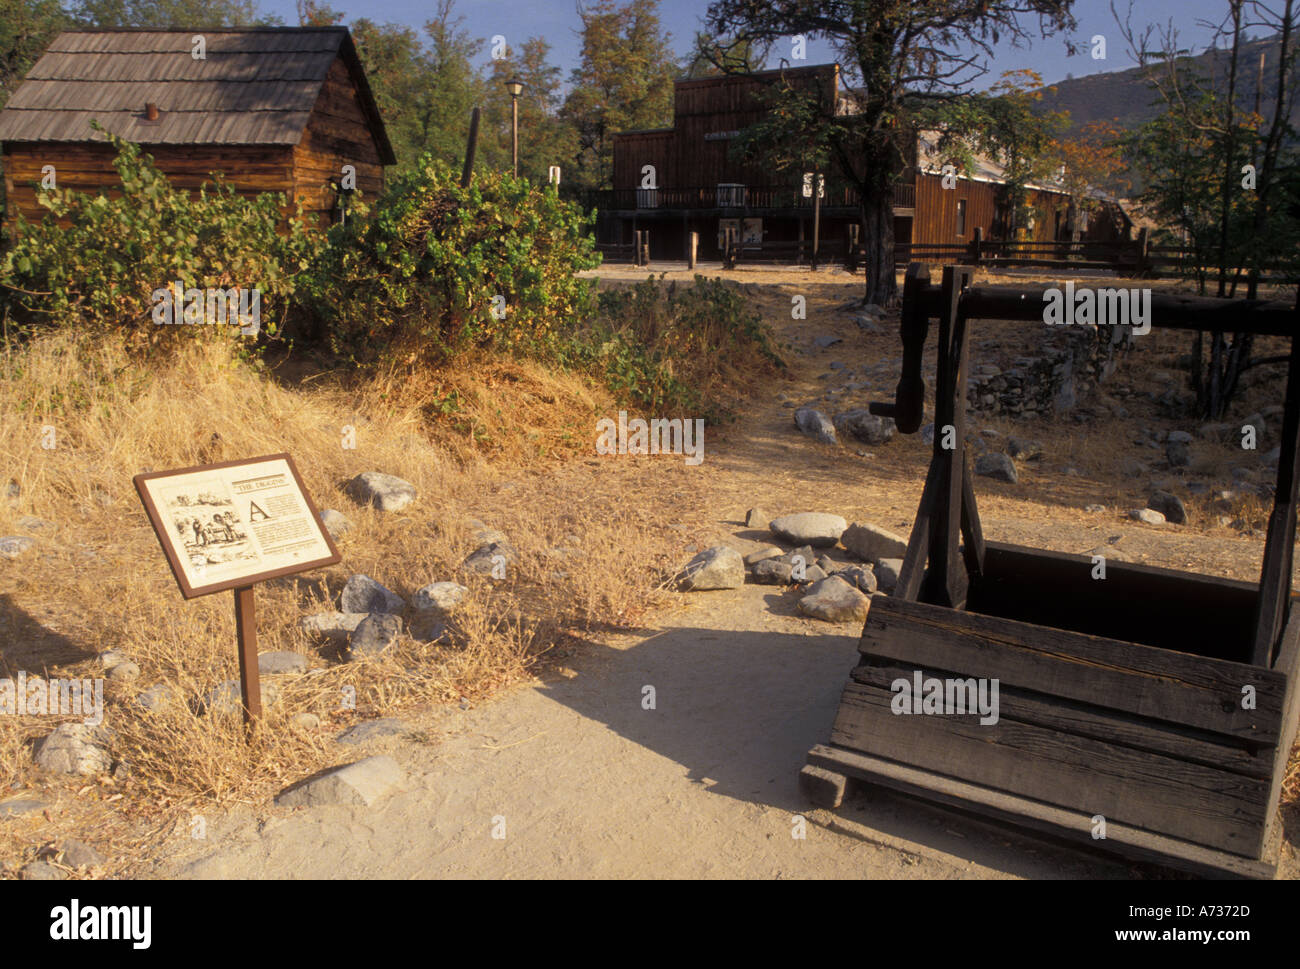 AJ3787, California, CA - Stock Image